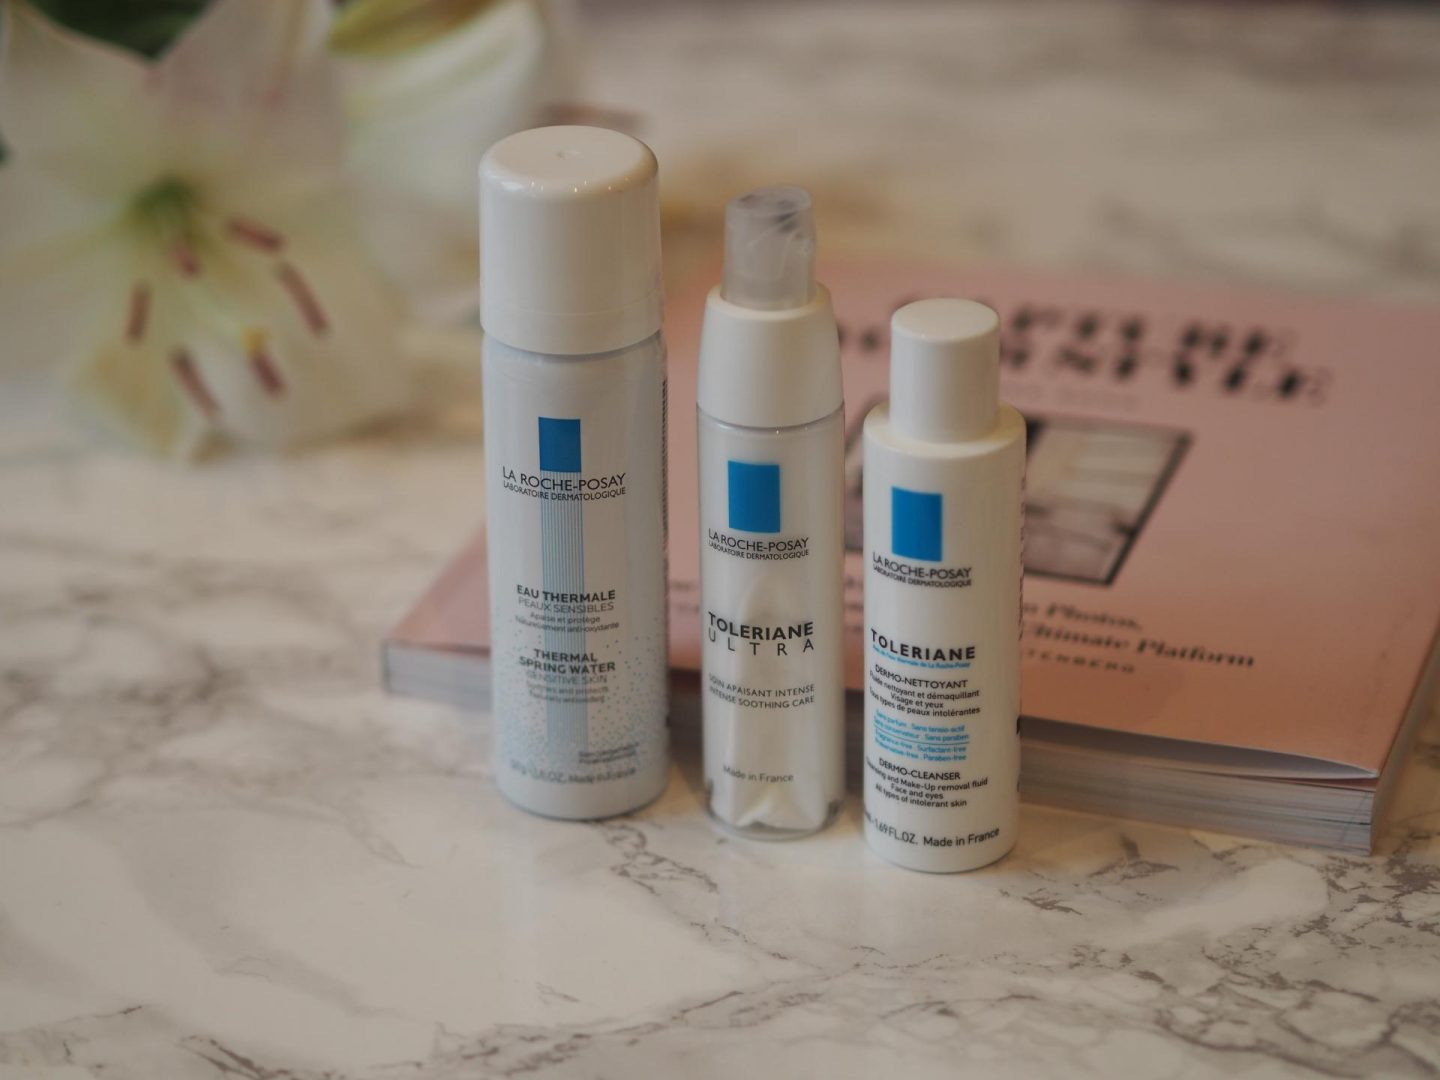 La Roche Posay Toleraine 3-Step System for Sensitive Skin